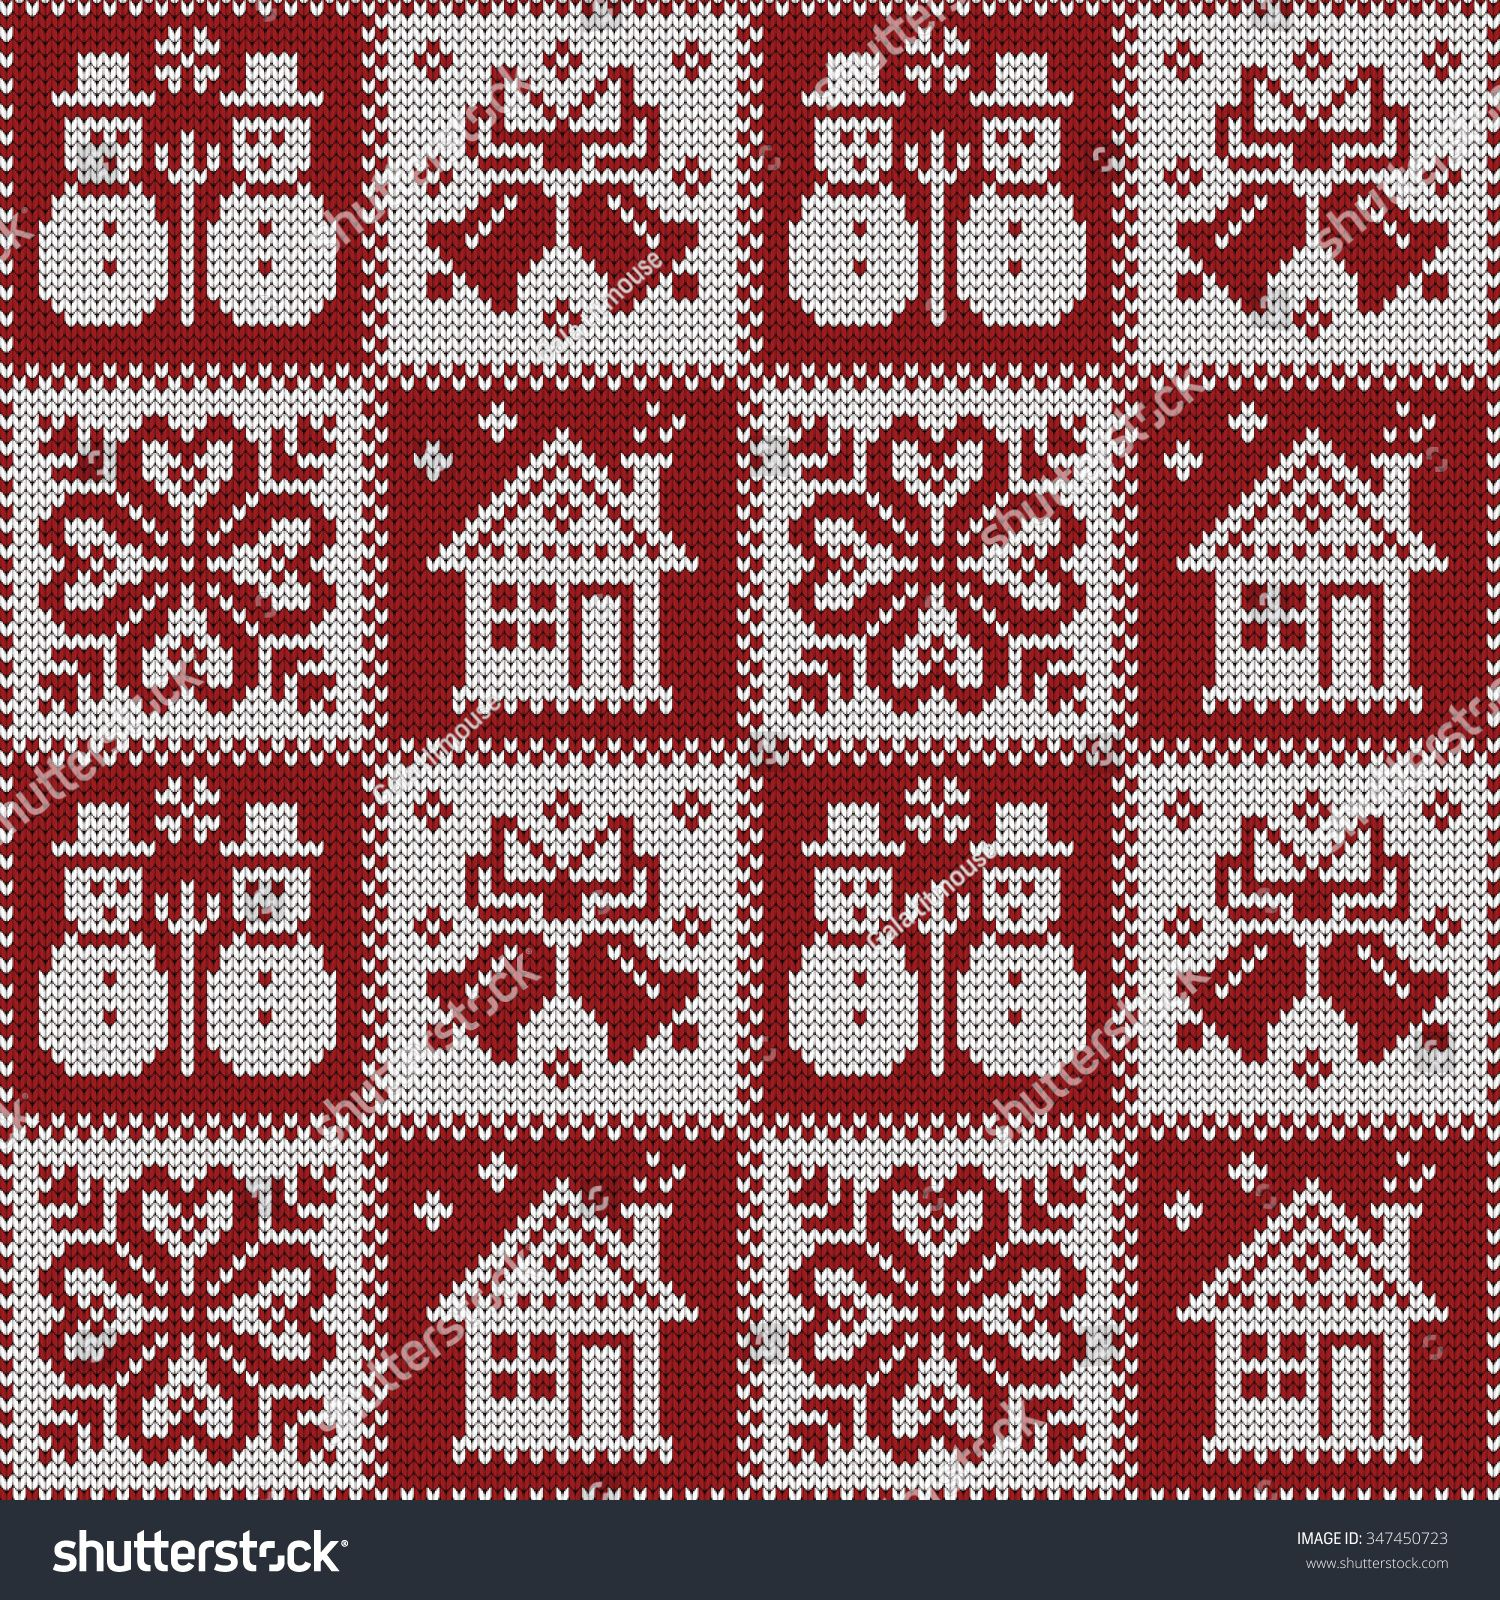 Photo of Gestricktes nahtloses Weihnachtsmuster Stock Vector (Royalty Free) 347450723